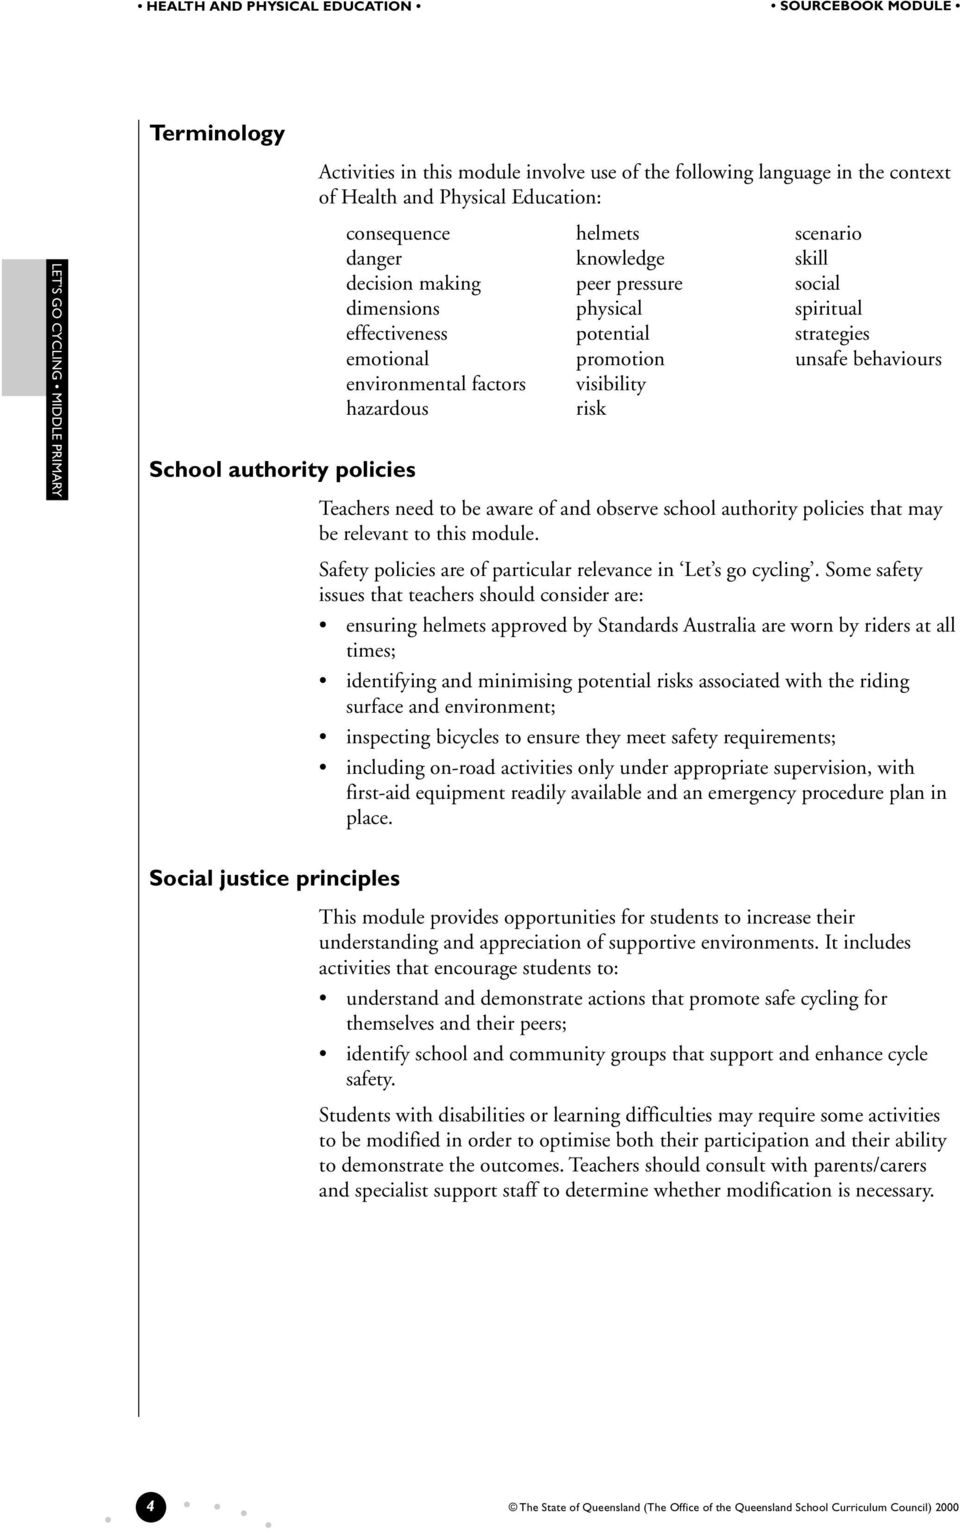 justice principles Teachers need to be aware of and observe school authority policies that may be relevant to this module. Safety policies are of particular relevance in Let s go cycling.